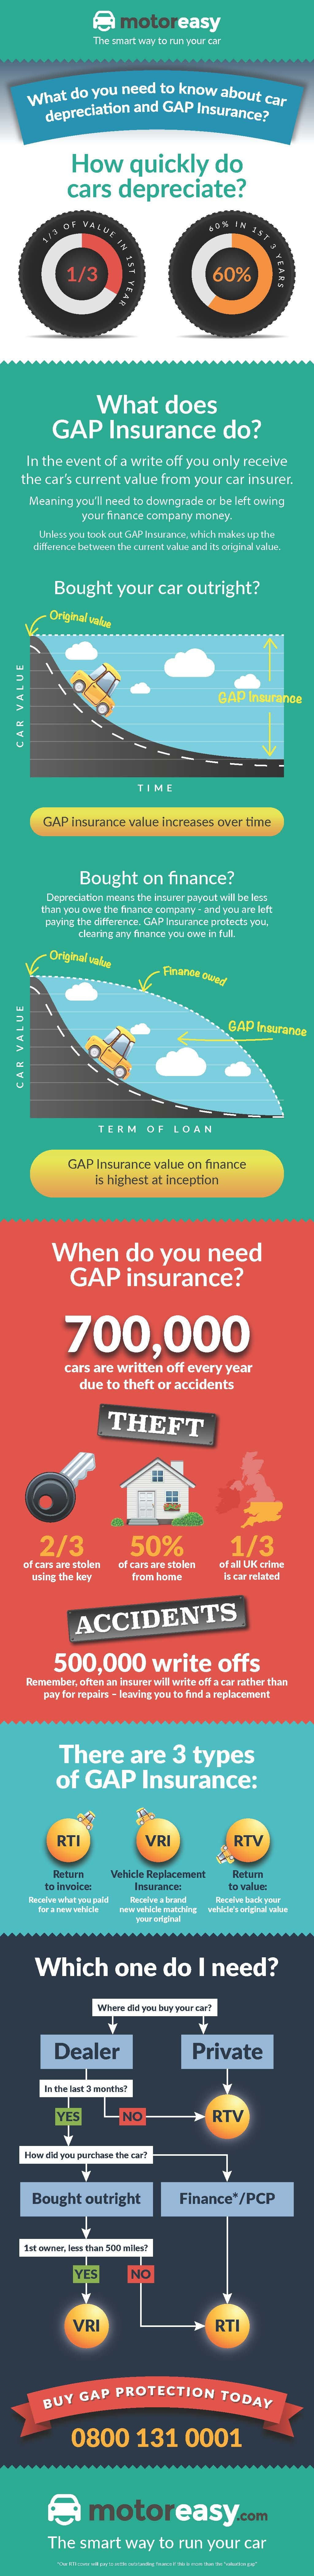 GAP Insurance Infographic Depreciation New or Used car - cash or finance